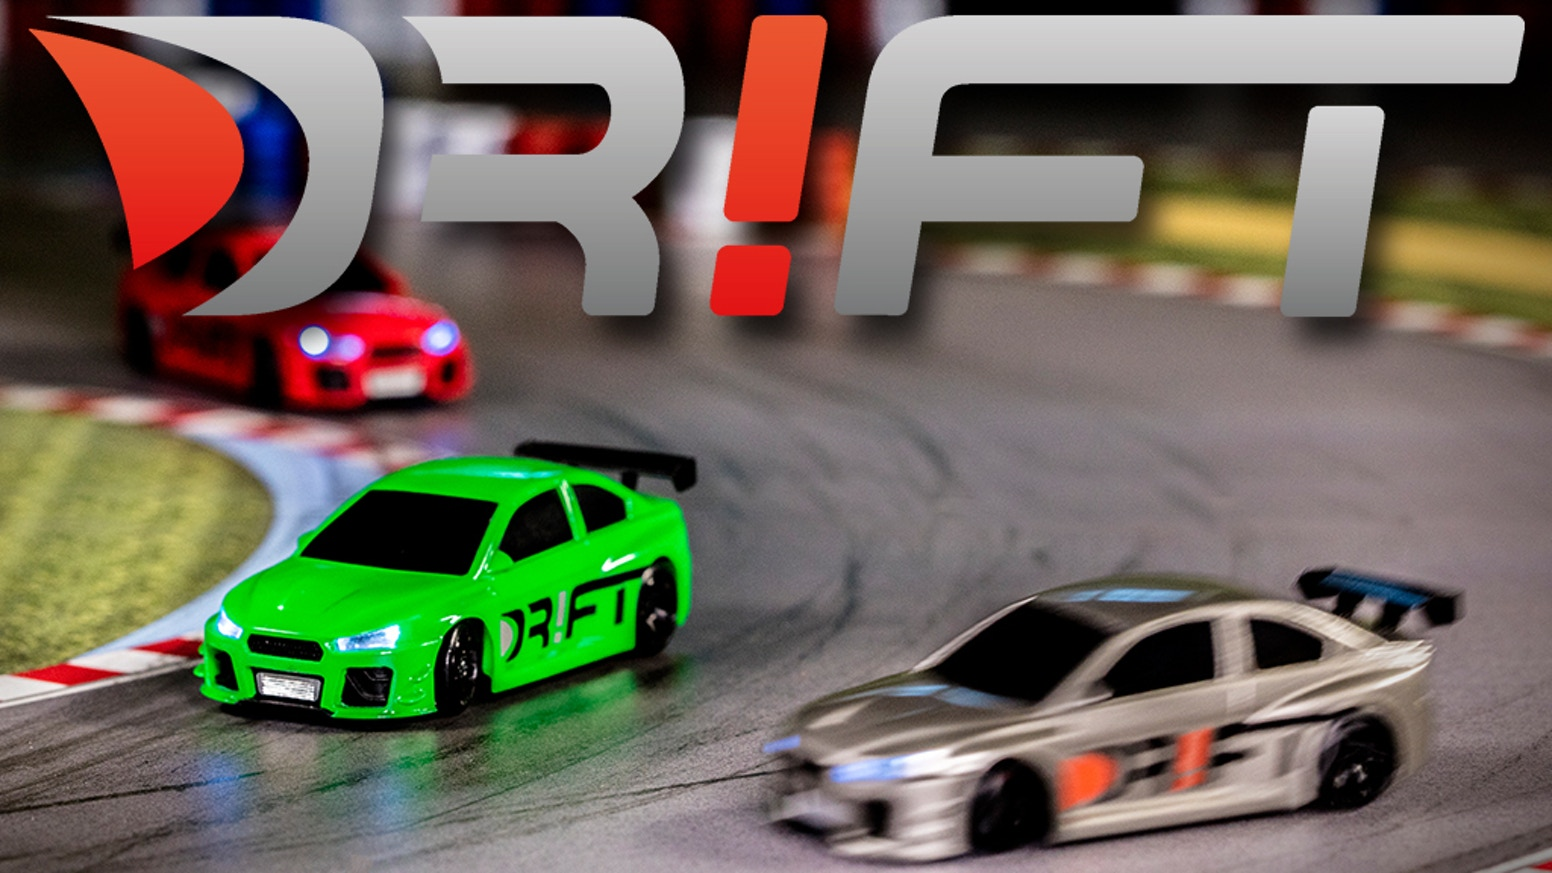 Drft First Drift Racing Simulation Right On Your Desk By Martin